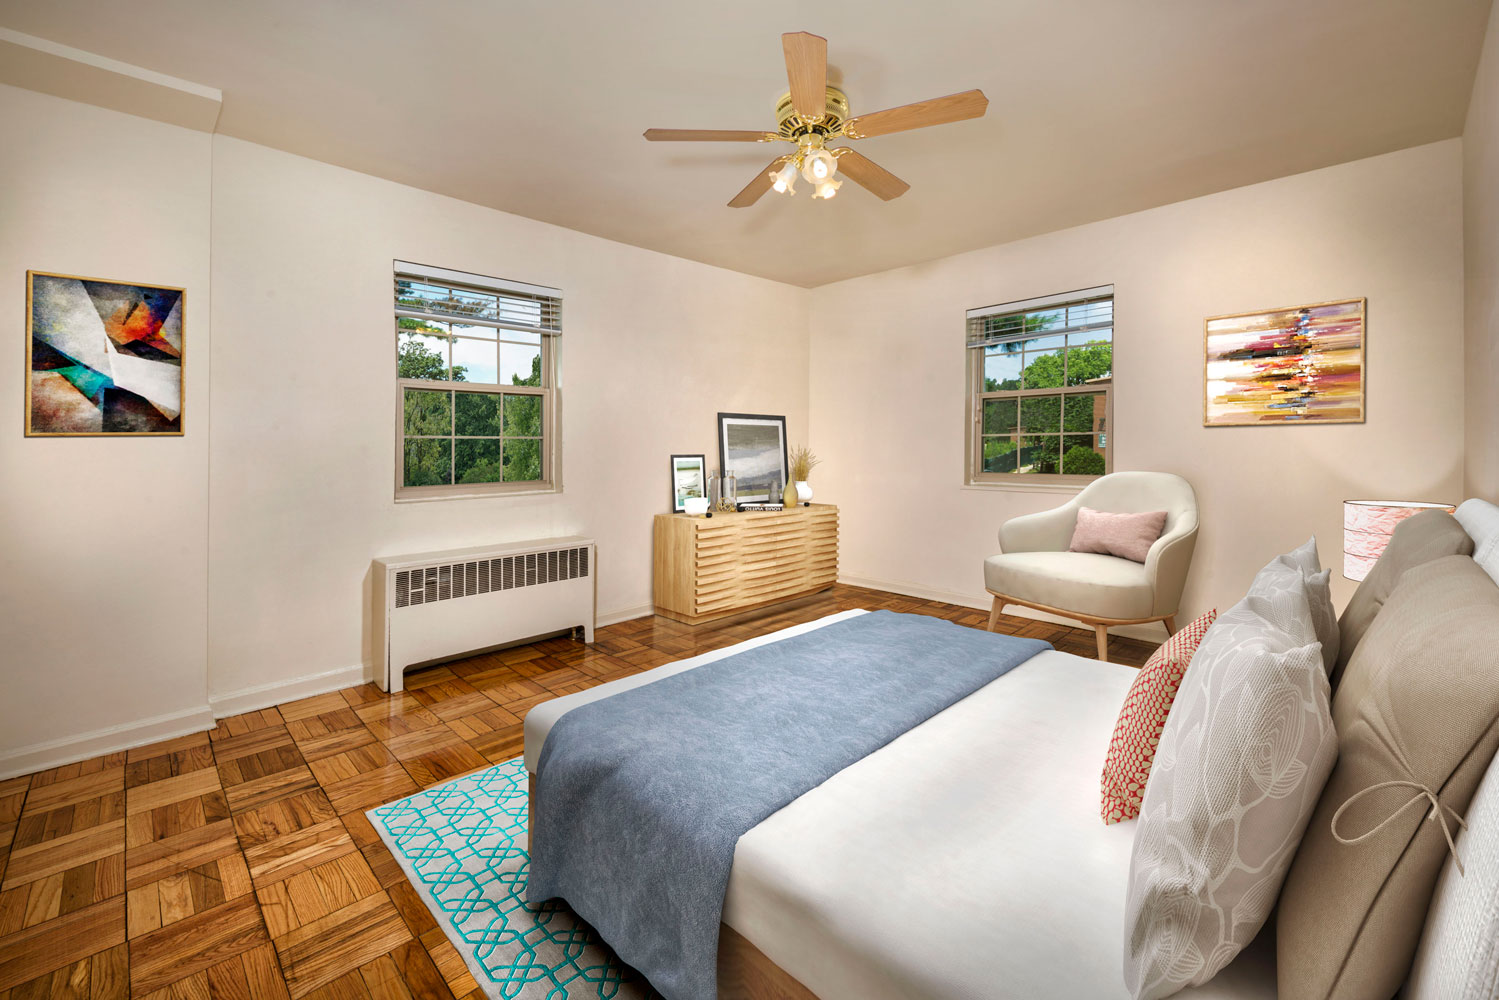 Cozy bedroom at Goodacre & Pine Ridge Apartments in Silver Spring, MD